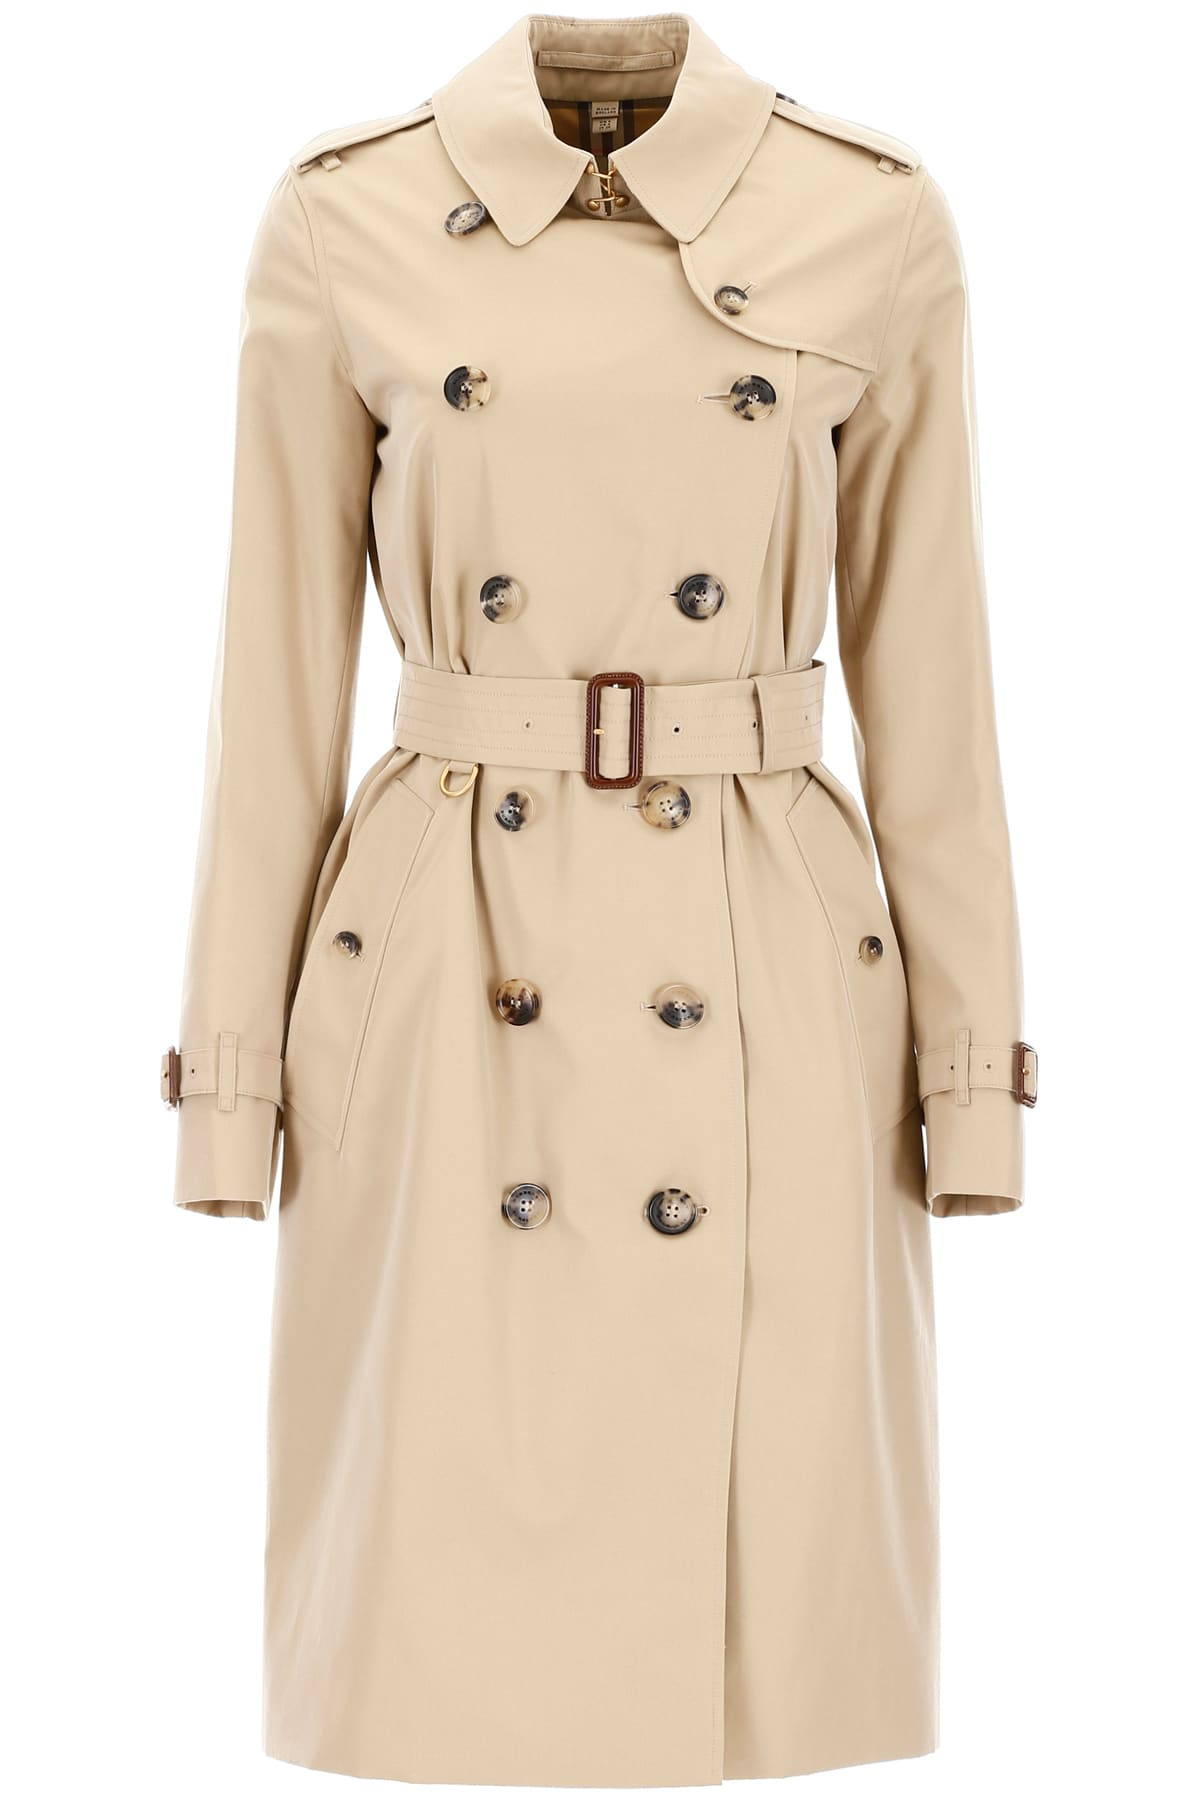 Burberry Long Kensington Trench Coat